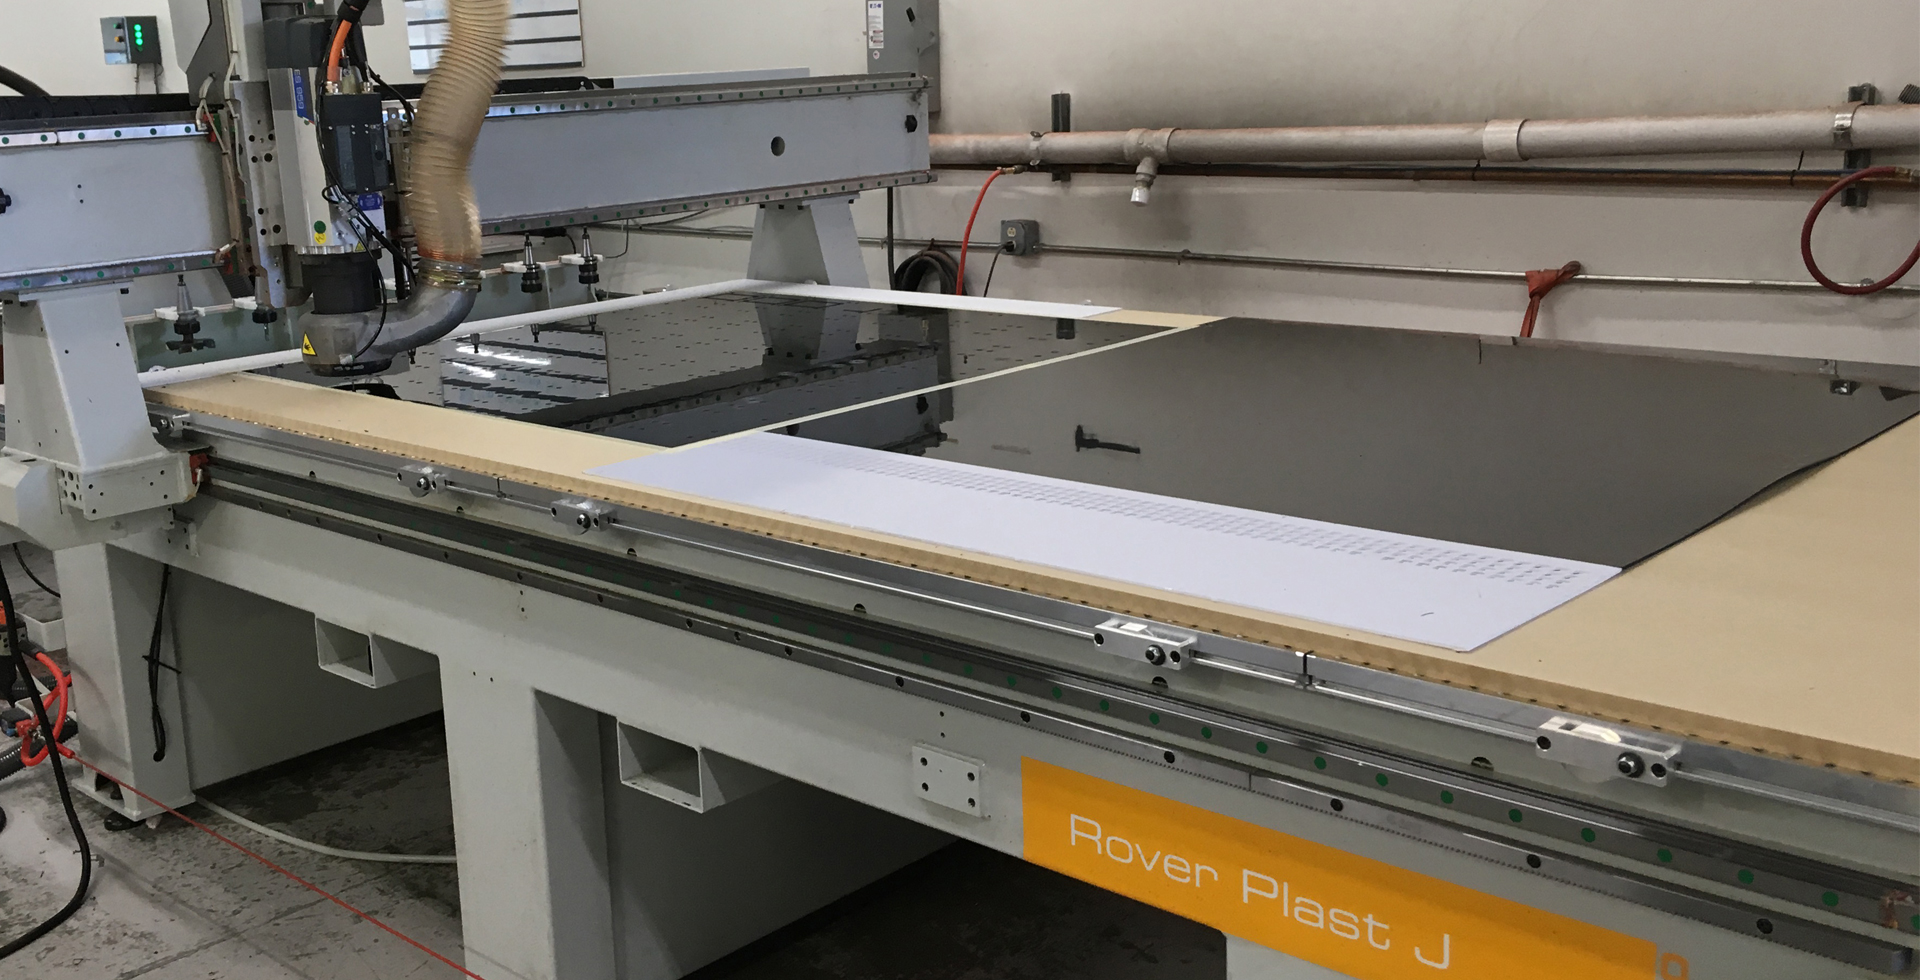 Making Short Run a Profit with CNC Routers